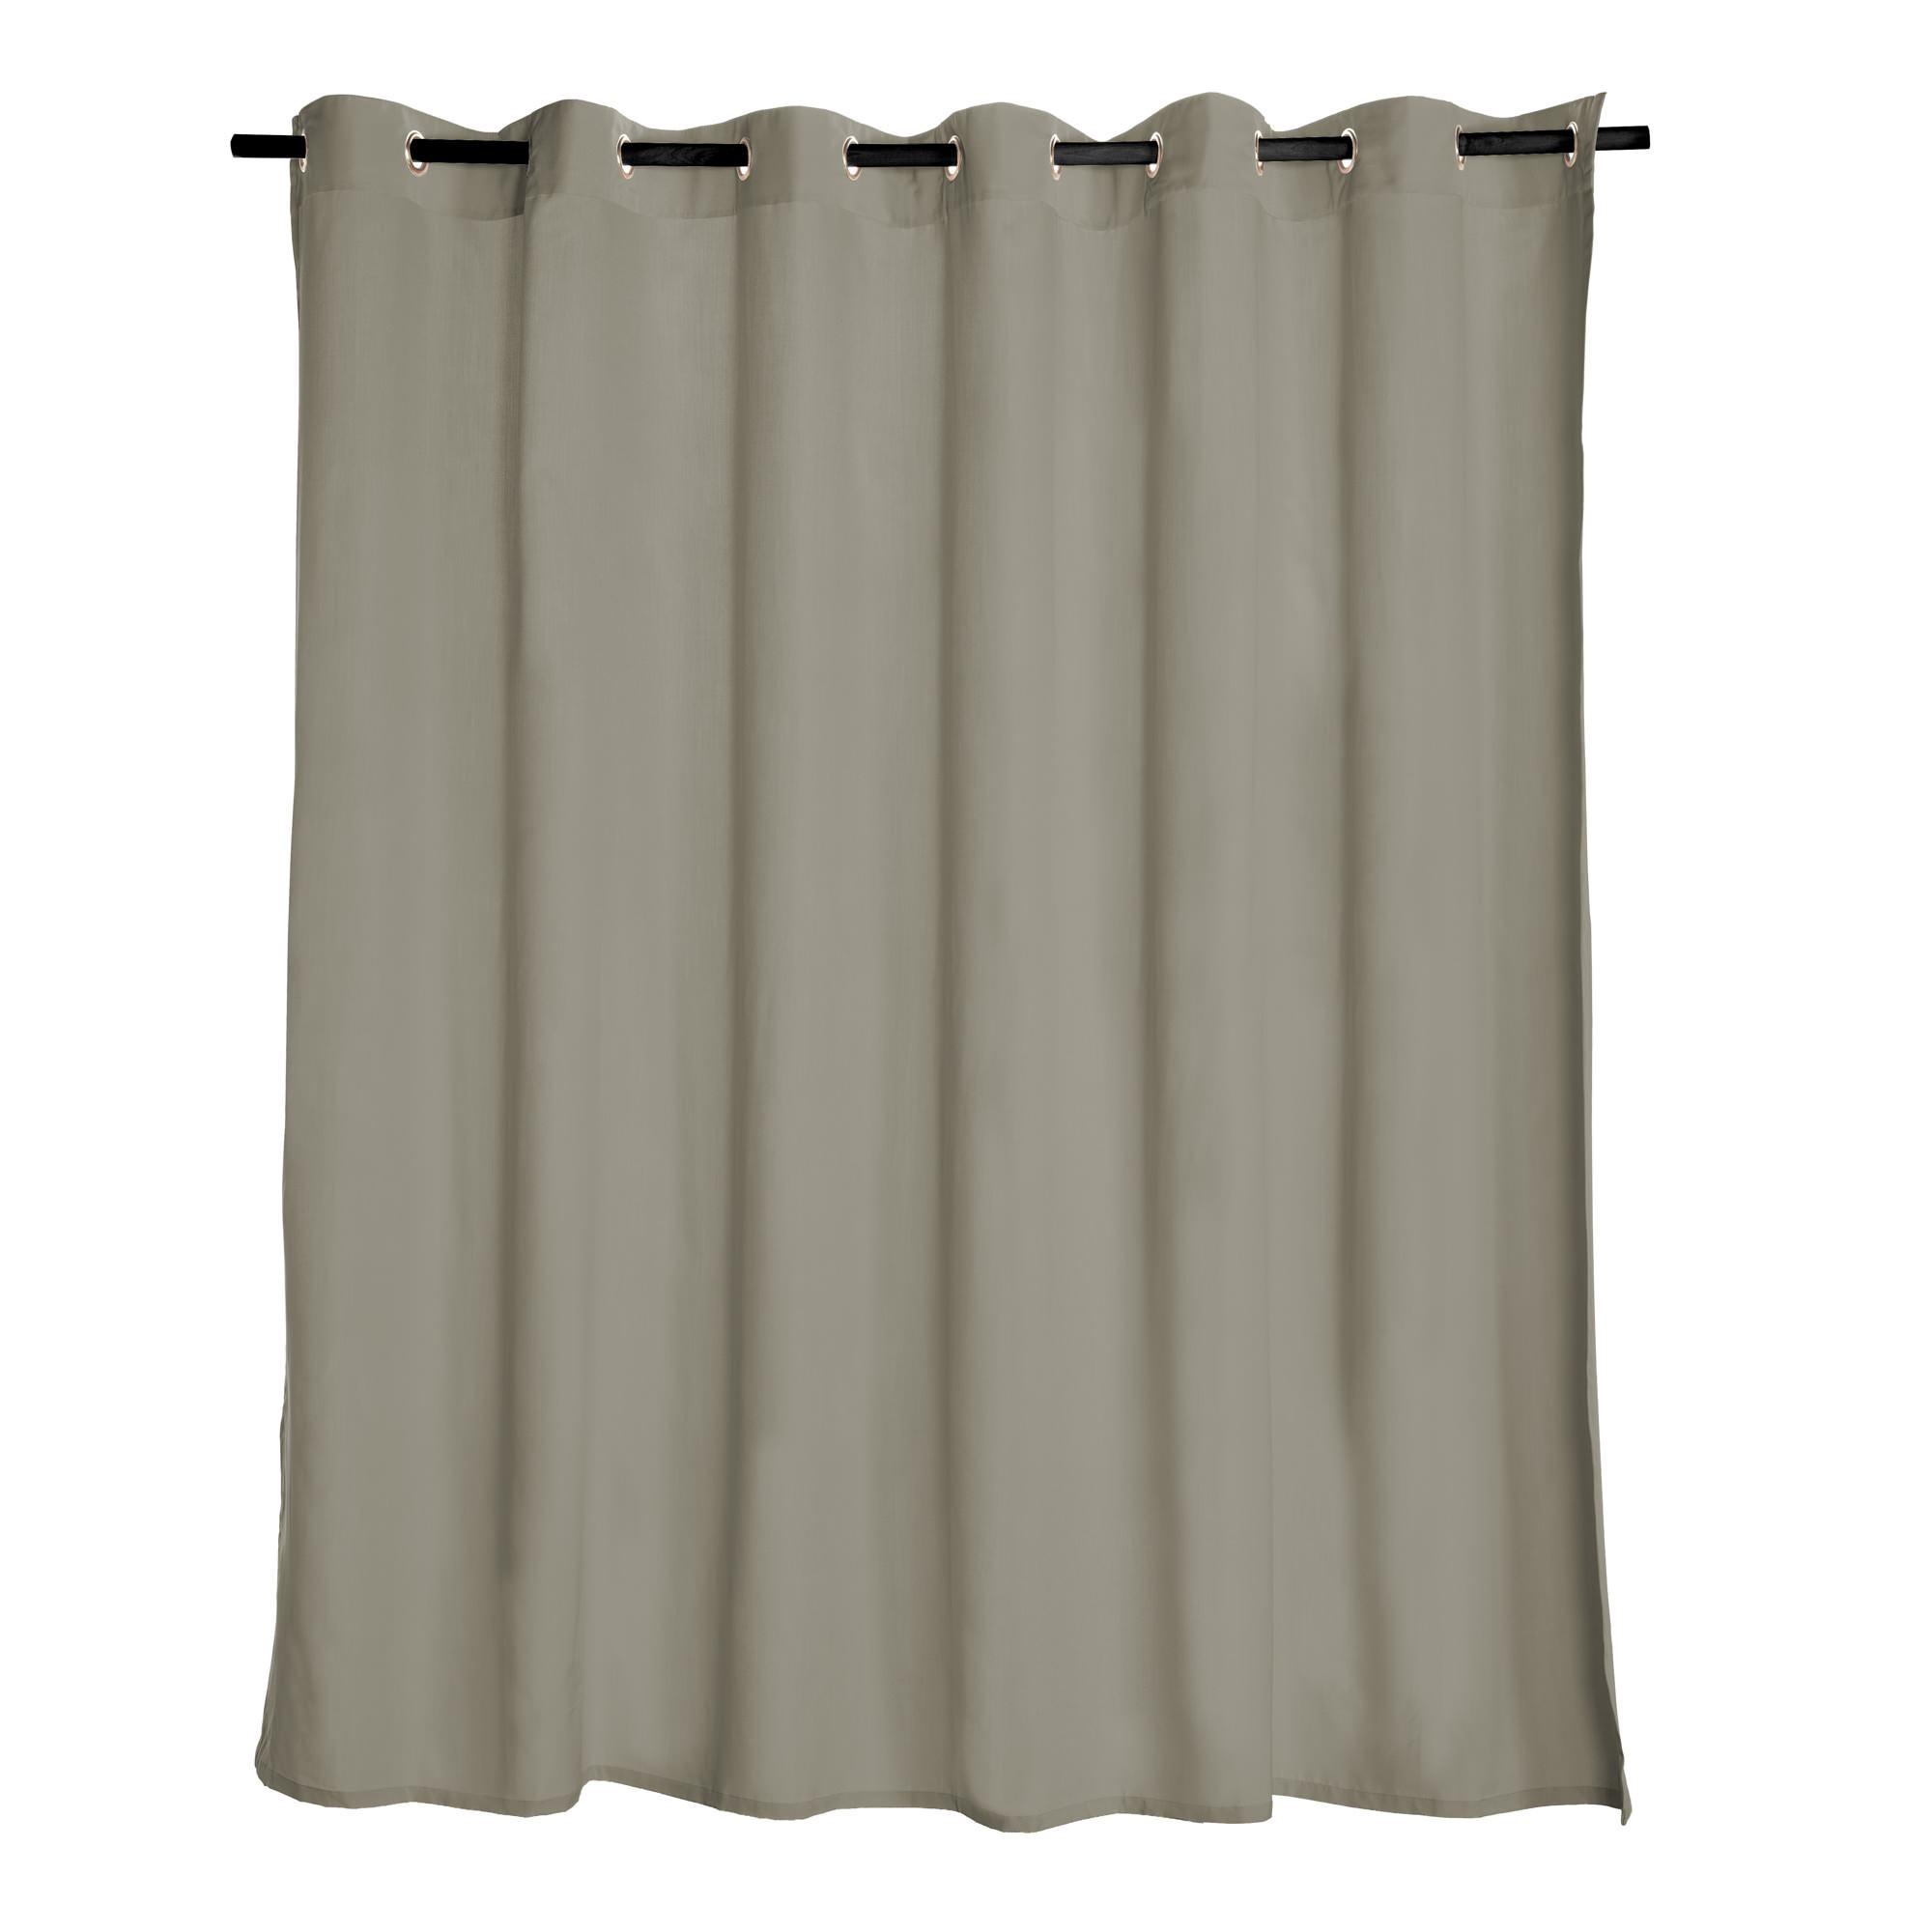 curtain door shades extra vertical window with top horizontal treatments pictures curtains doors roman for wide size of drapes grommet blinds rods patio sliding sheer full glass